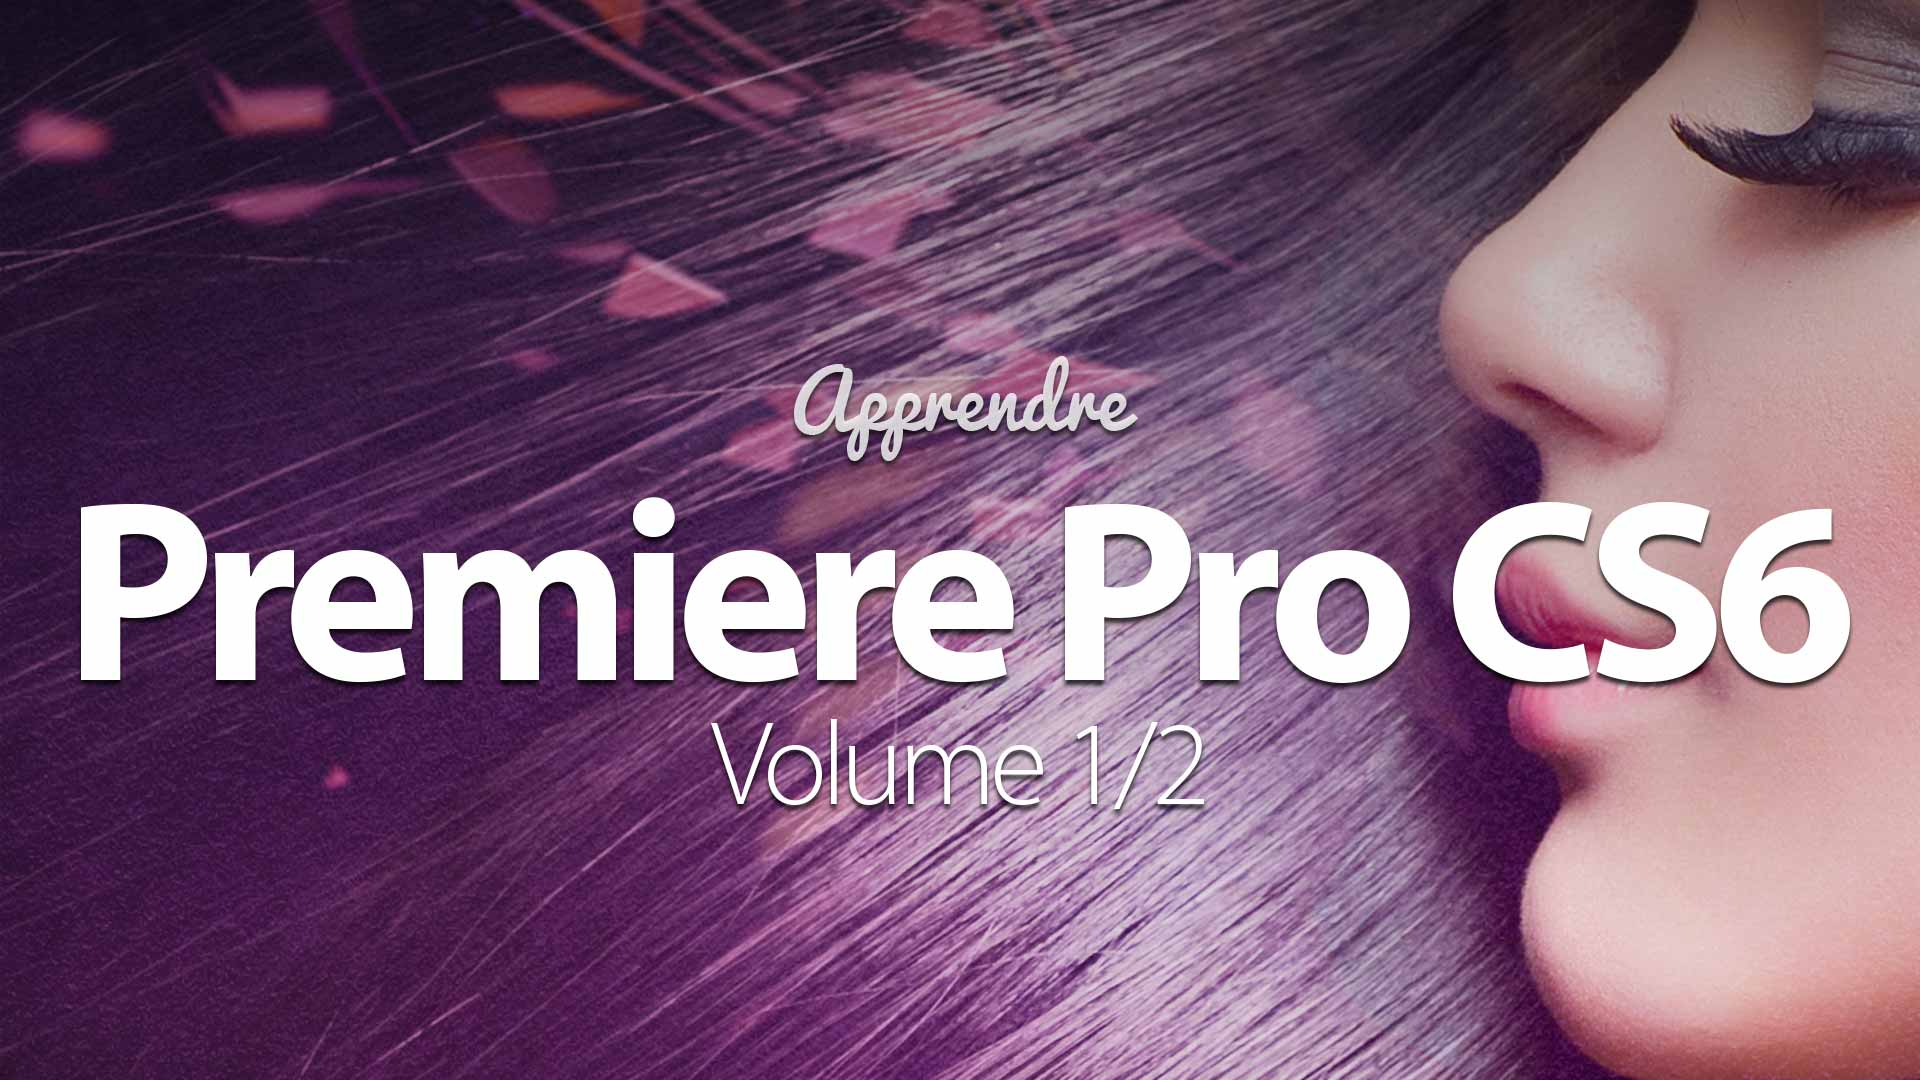 Tutoriel Adobe Premiere Pro CS6 - Volume 1/2